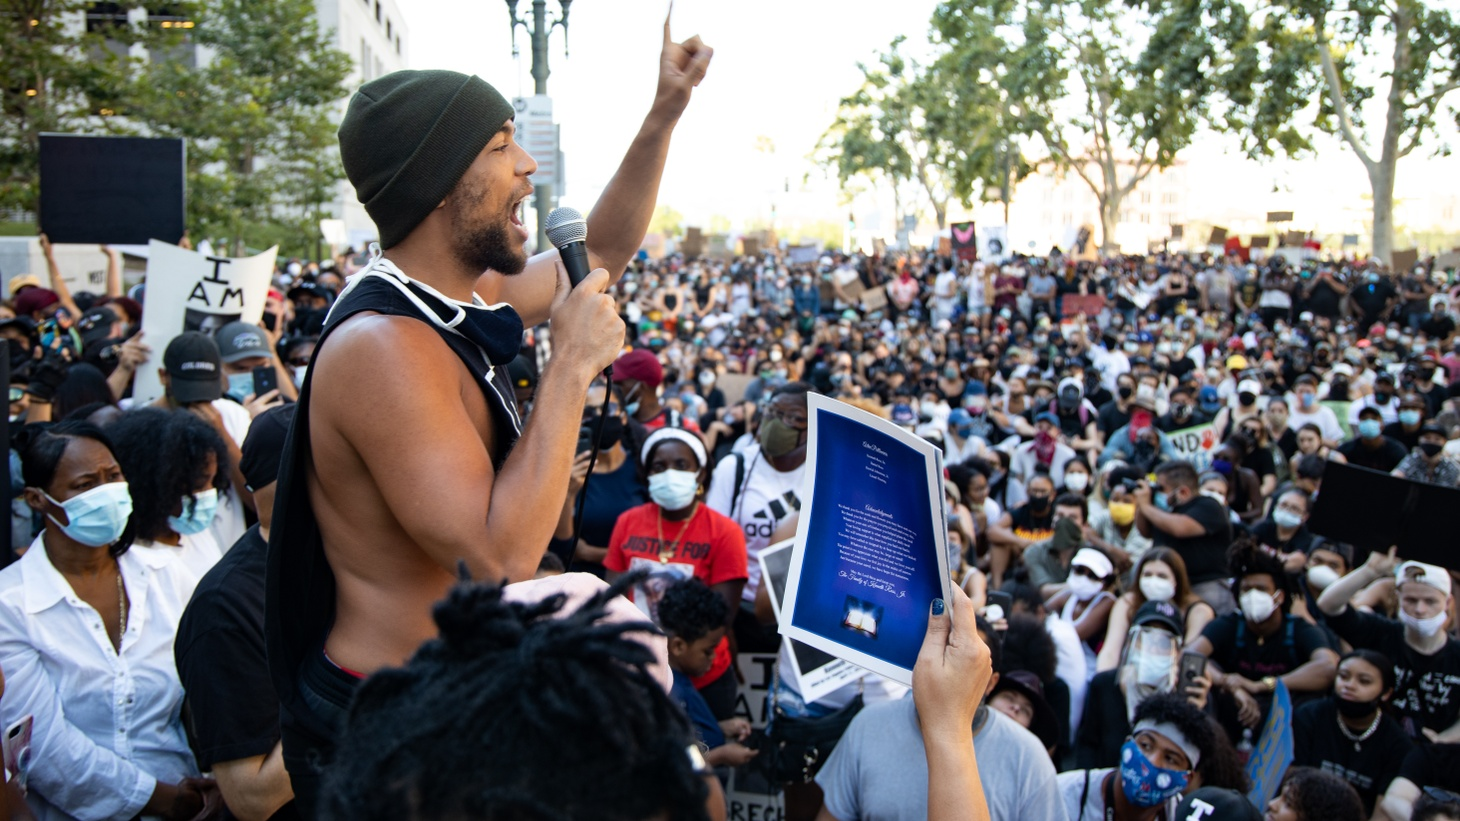 Thousands of Angelenos have gathered to protest the police killing of George Floyd. What does the crowding mean for a spike in coronavirus cases?